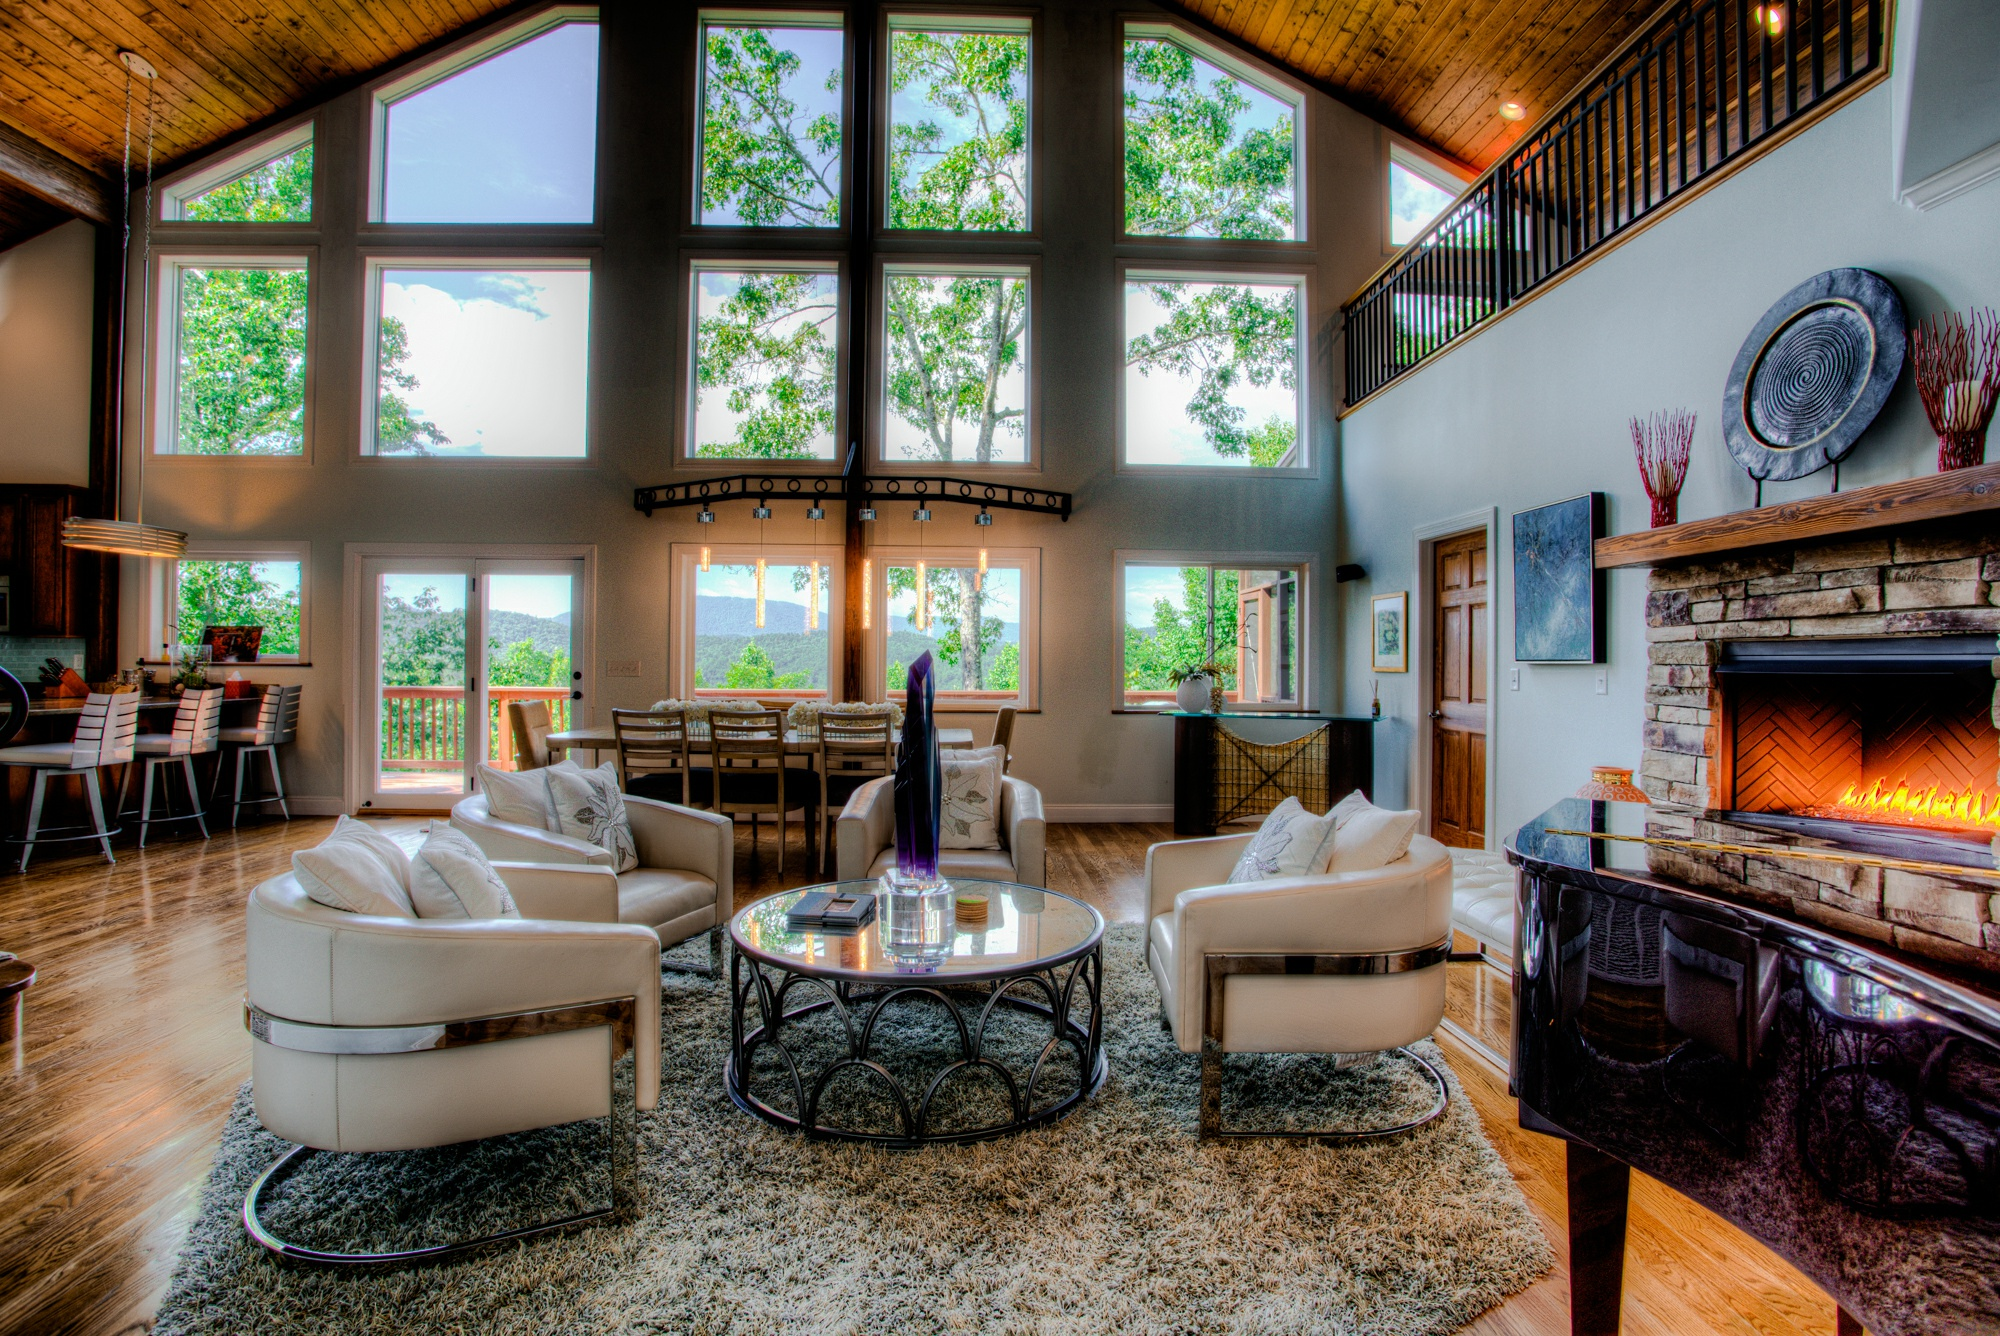 asheville nc attractive new cabin with inspiration river designing cabins great remodel wow ideas about rentals arrangement decor in home